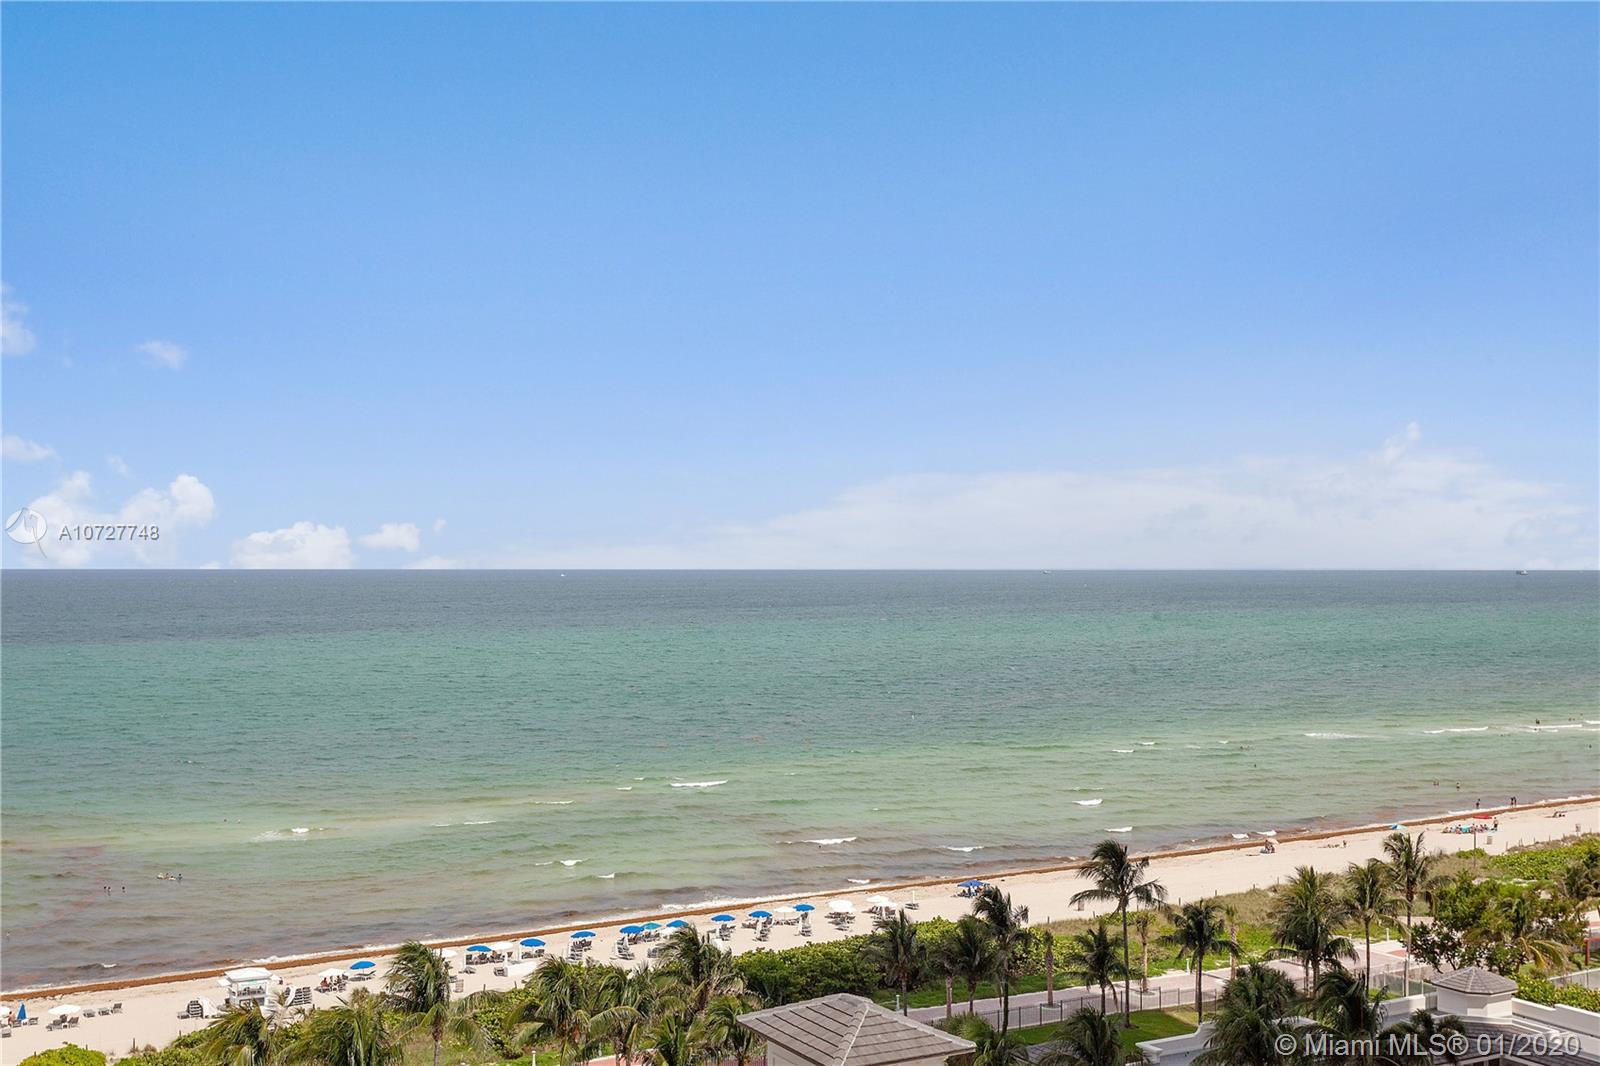 Enjoy breathtaking views of the ocean, bay and city from this SW corner fully furnished 2 bedrooms/2 baths at the Blue Diamond. This apartment offers: floor to ceiling glass windows, marble floors, wood floors in bedrooms, eat-in kitchen with granite countertops, living and dining room, walk in closets and wraparound balcony. The Blue & Green Diamond offer unsurpassed amenities including 24 hour security, valet, concierge, tennis courts, large pool with towel service, café/market w/room service, a 16,000 SF Oceanside clubhouse & more.